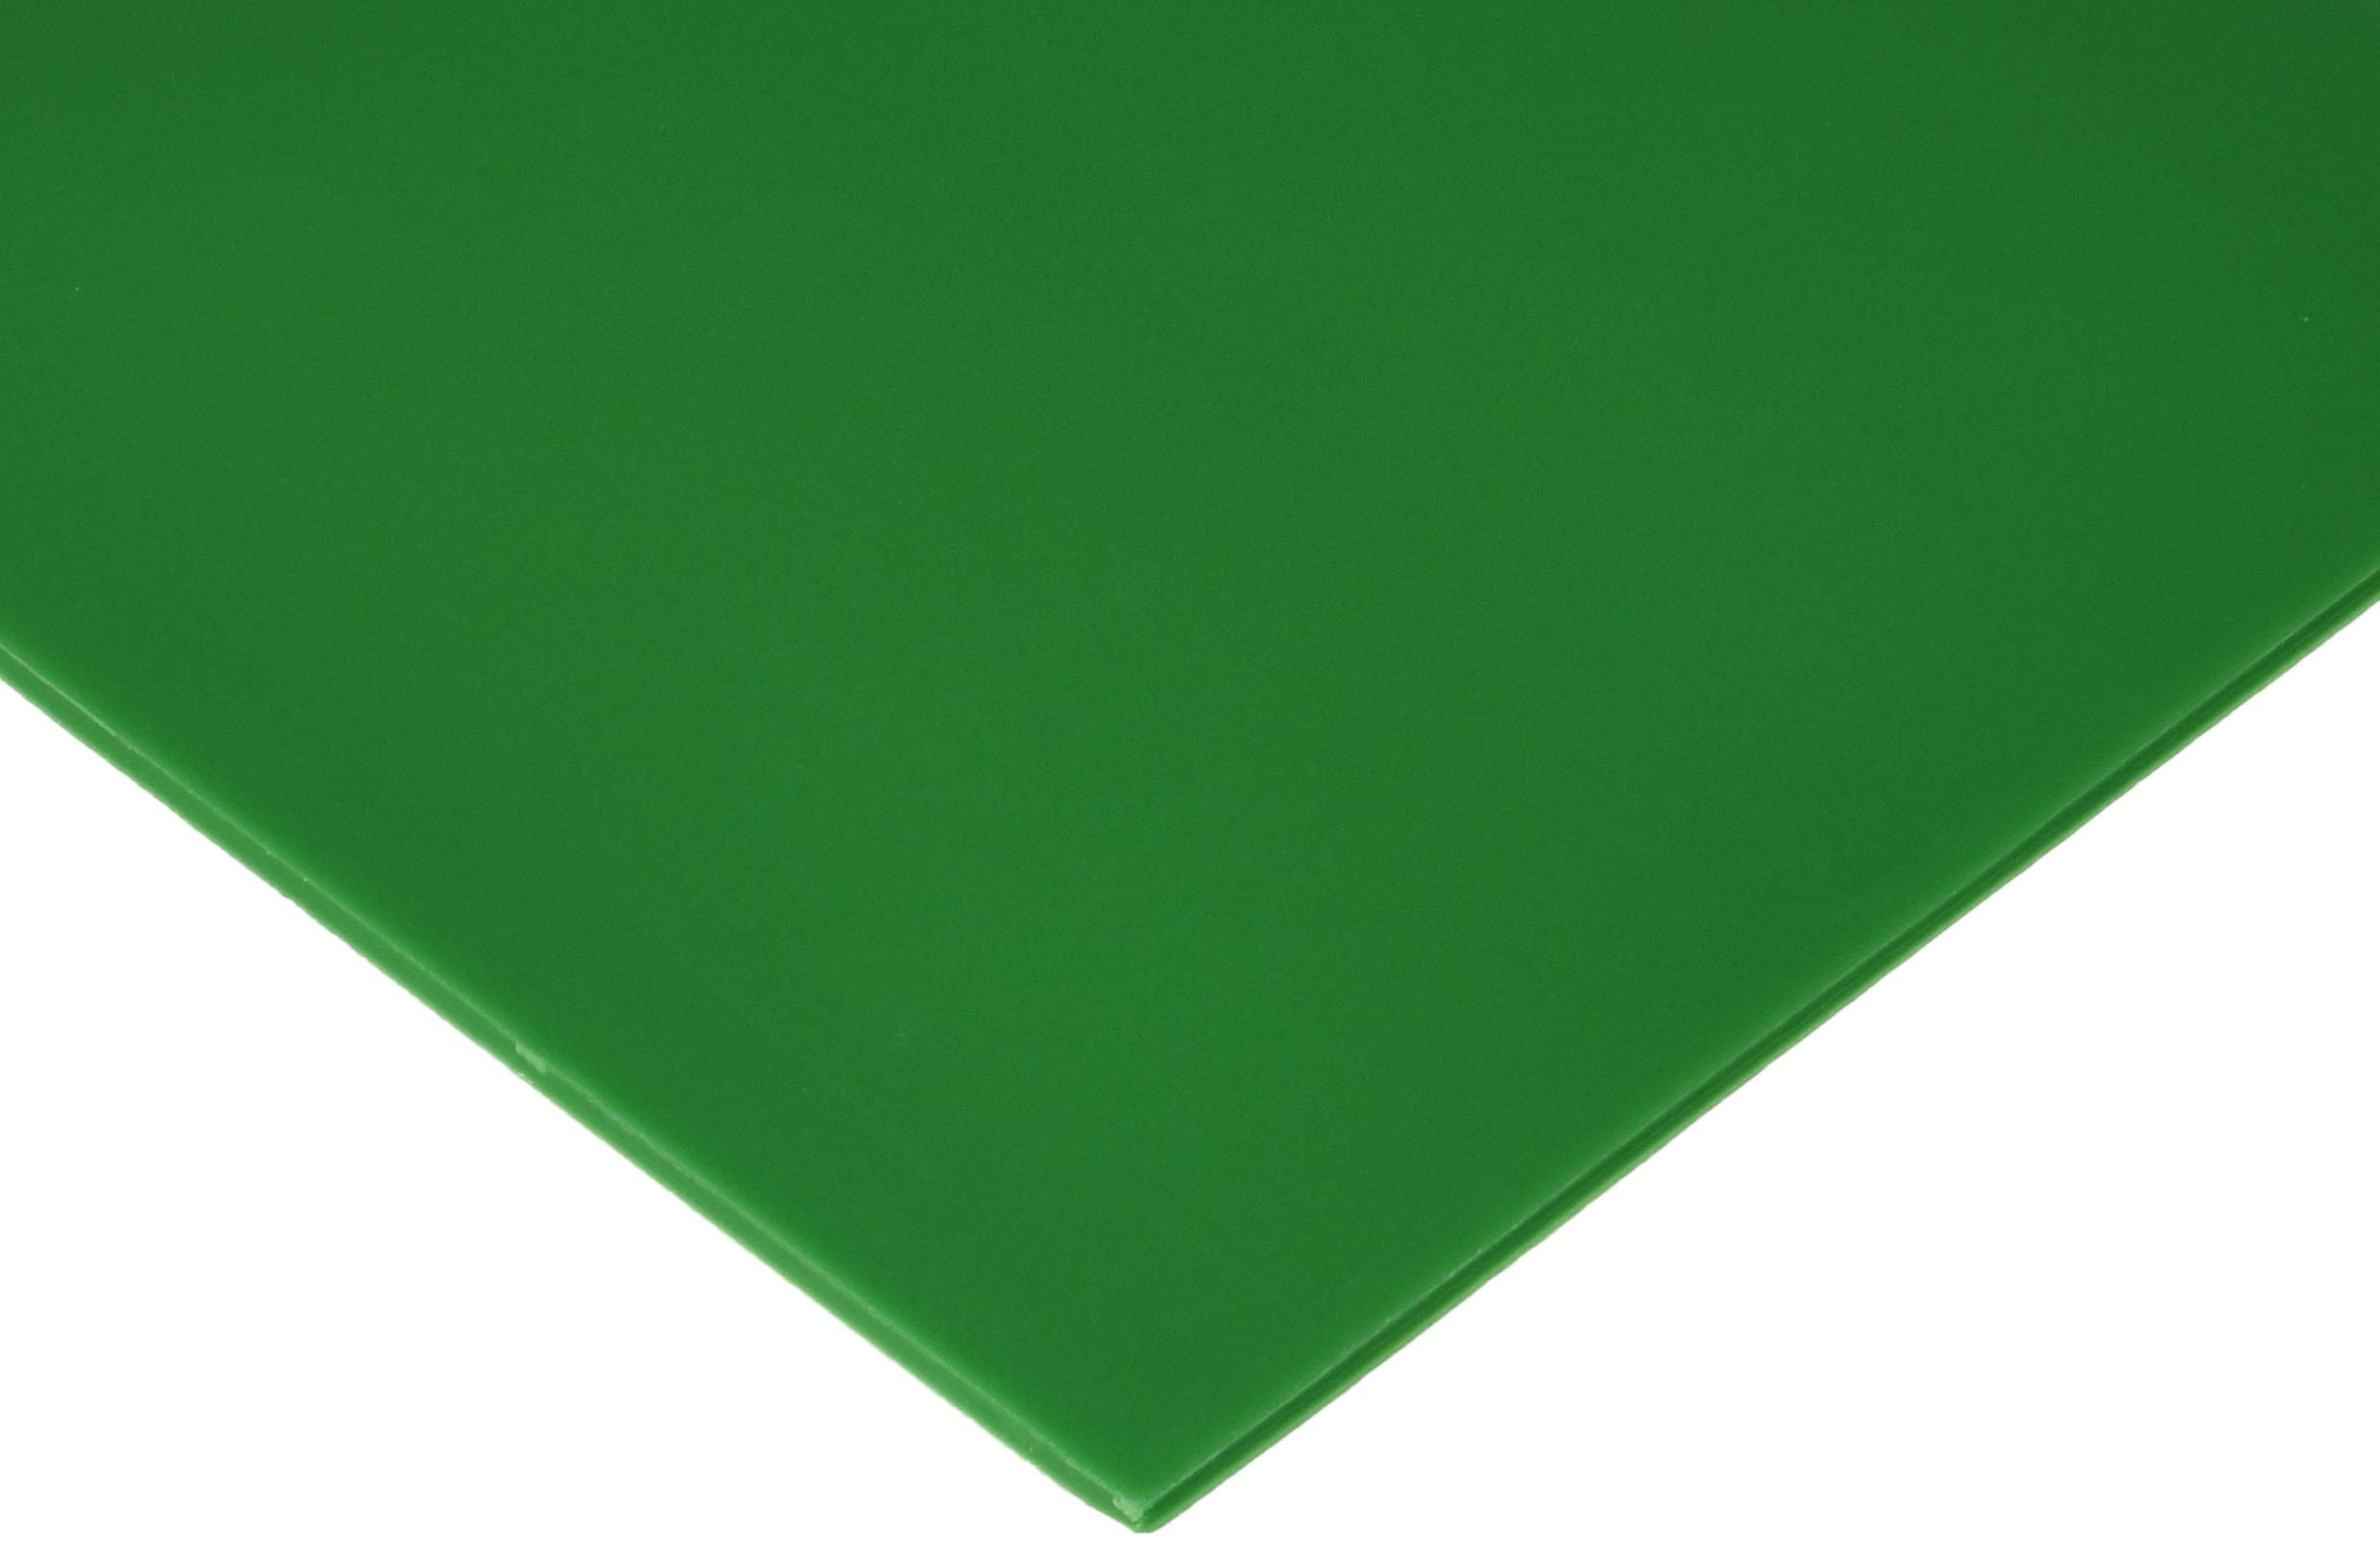 Polyshok Mouth Guard Material Sheet, Green, 5'' X 5'', 3mm Thickness, Pack of 12 by Buffalo Dental